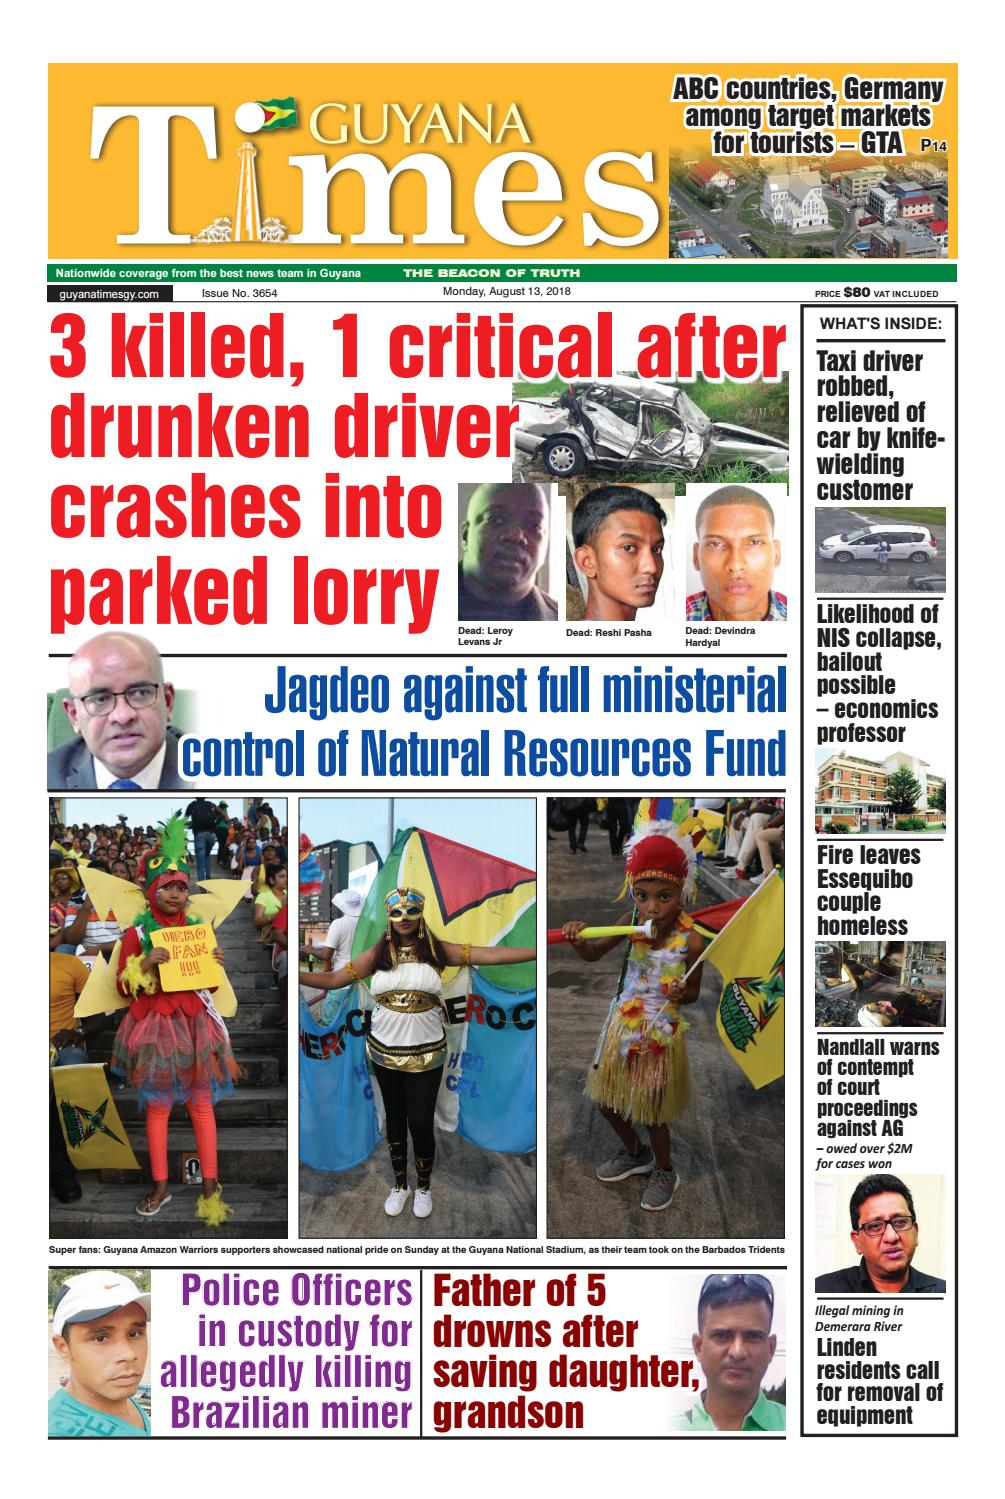 Guyana Times - Monday, August 13, 2018 by Gytimes - issuu